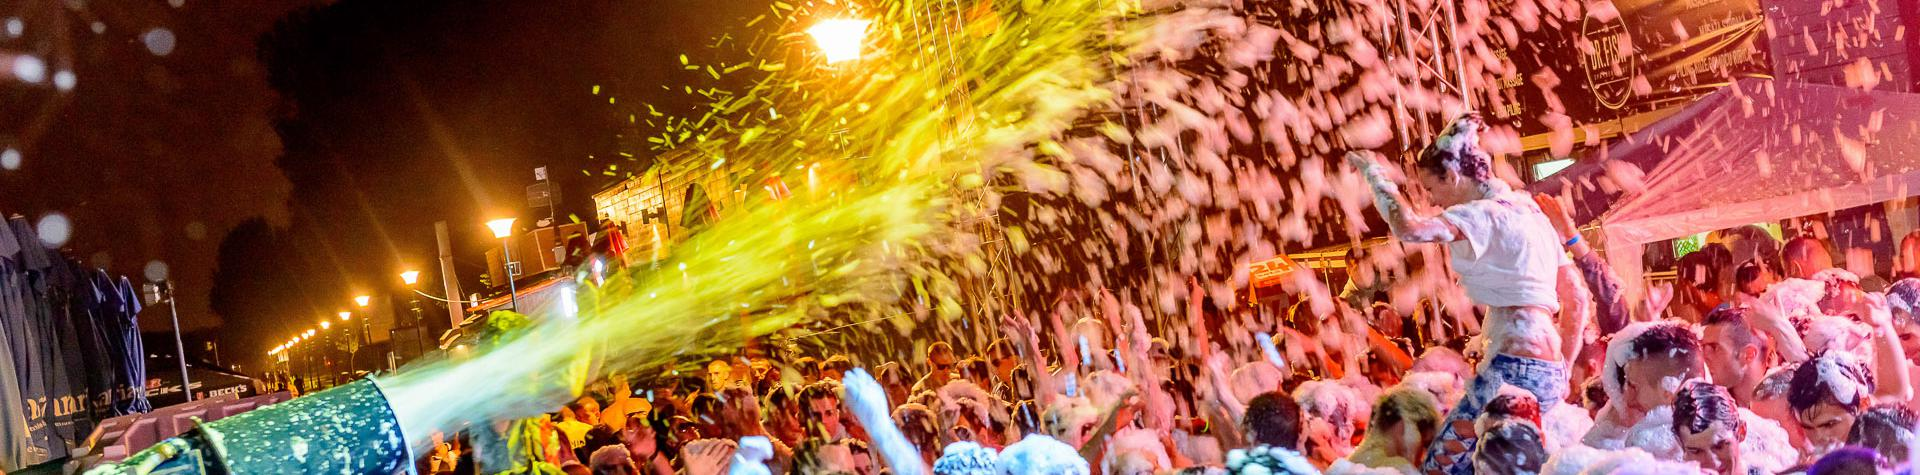 VjSky.net Foam Fest 2014 Beach Edition Subota 30.08.2014. 001